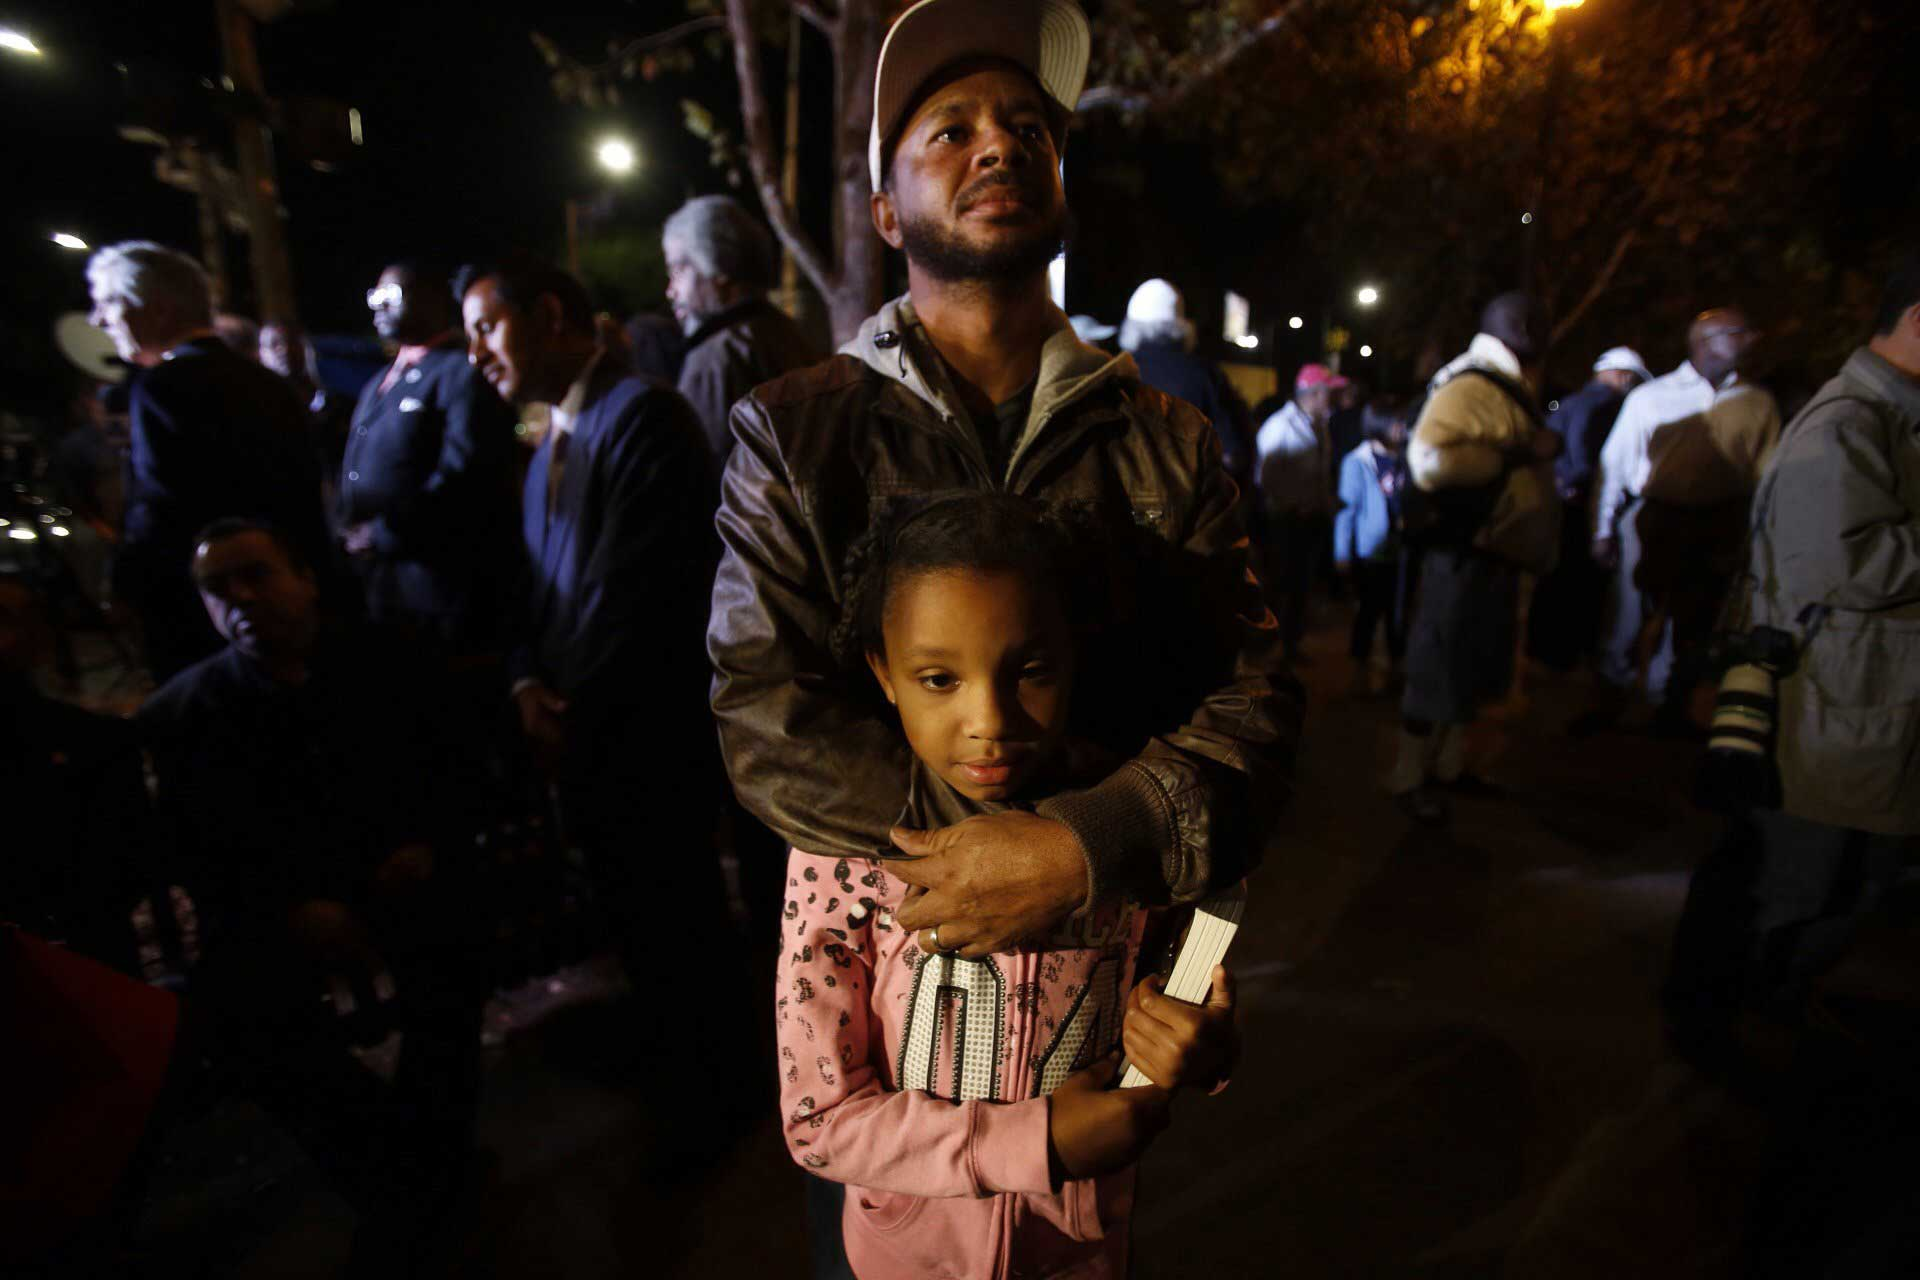 Donald Fields, 37, with daughter Olivia Fields, 9, at a Leimert Park gathering in Los Angeles on Nov. 24, 2014.